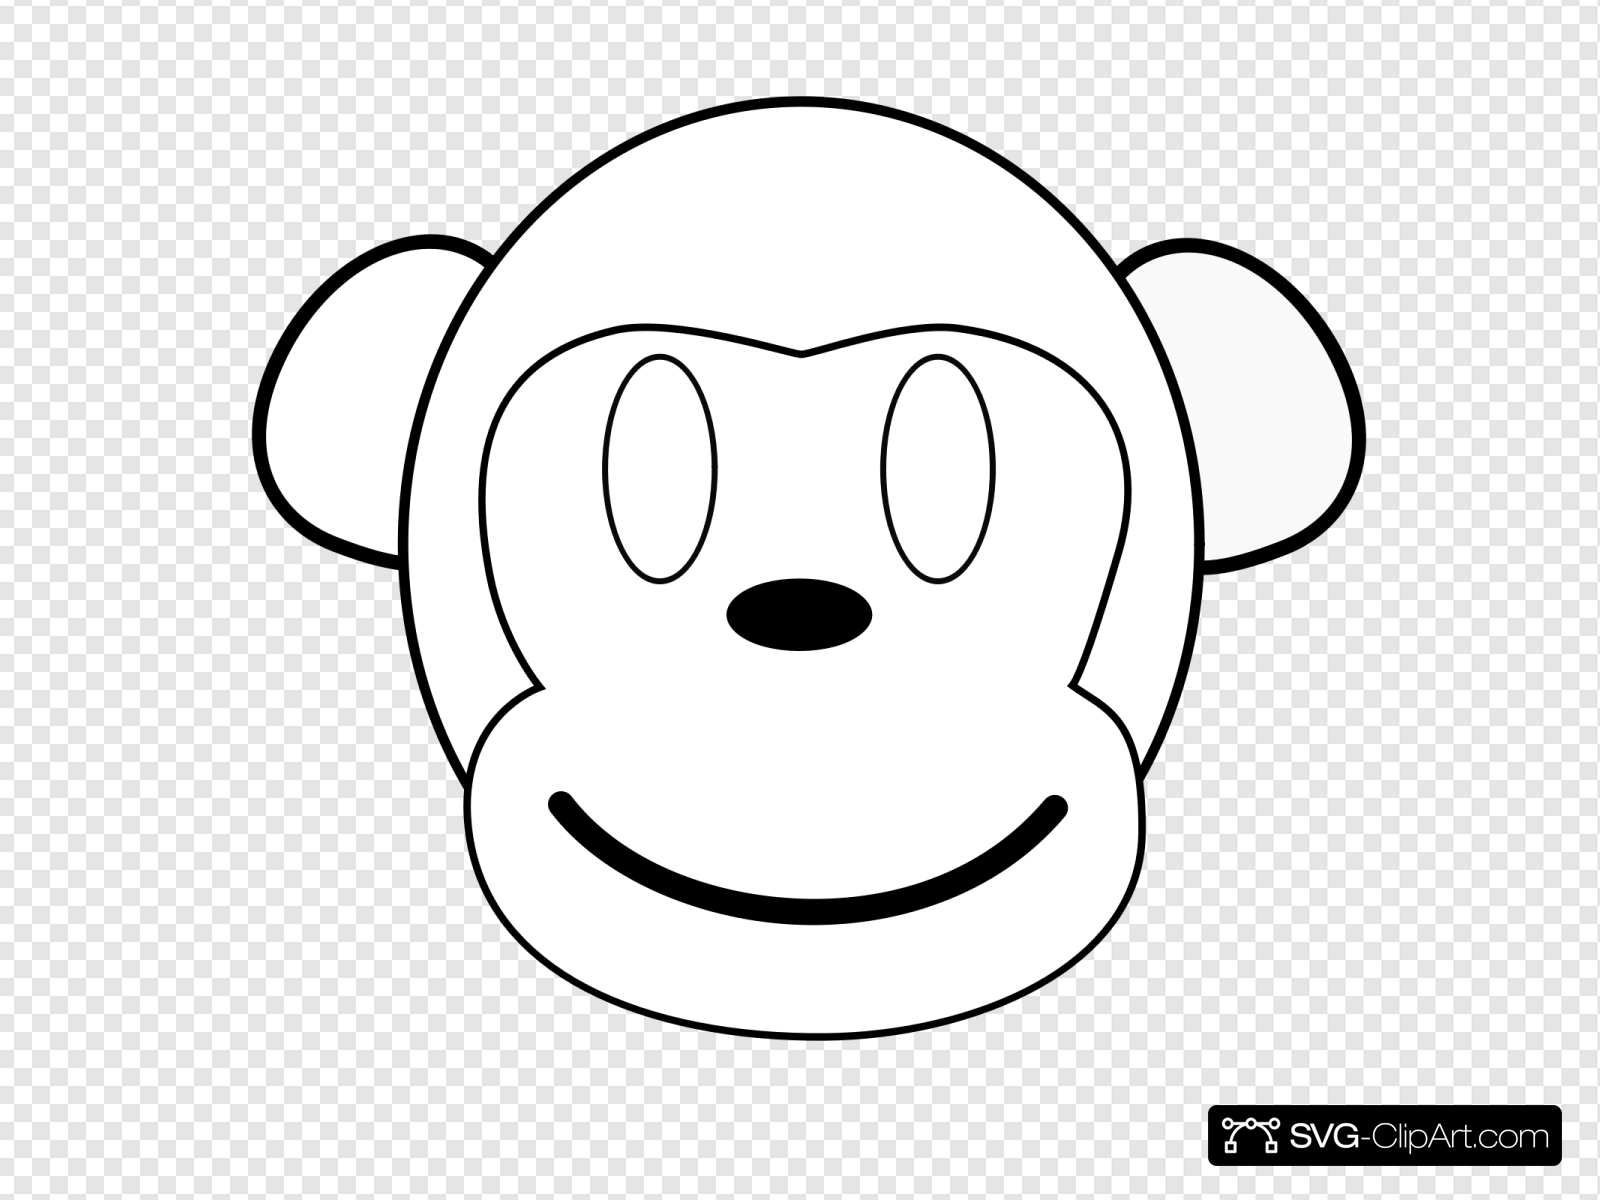 Monkey Outline Happy Clip art, Icon and SVG.